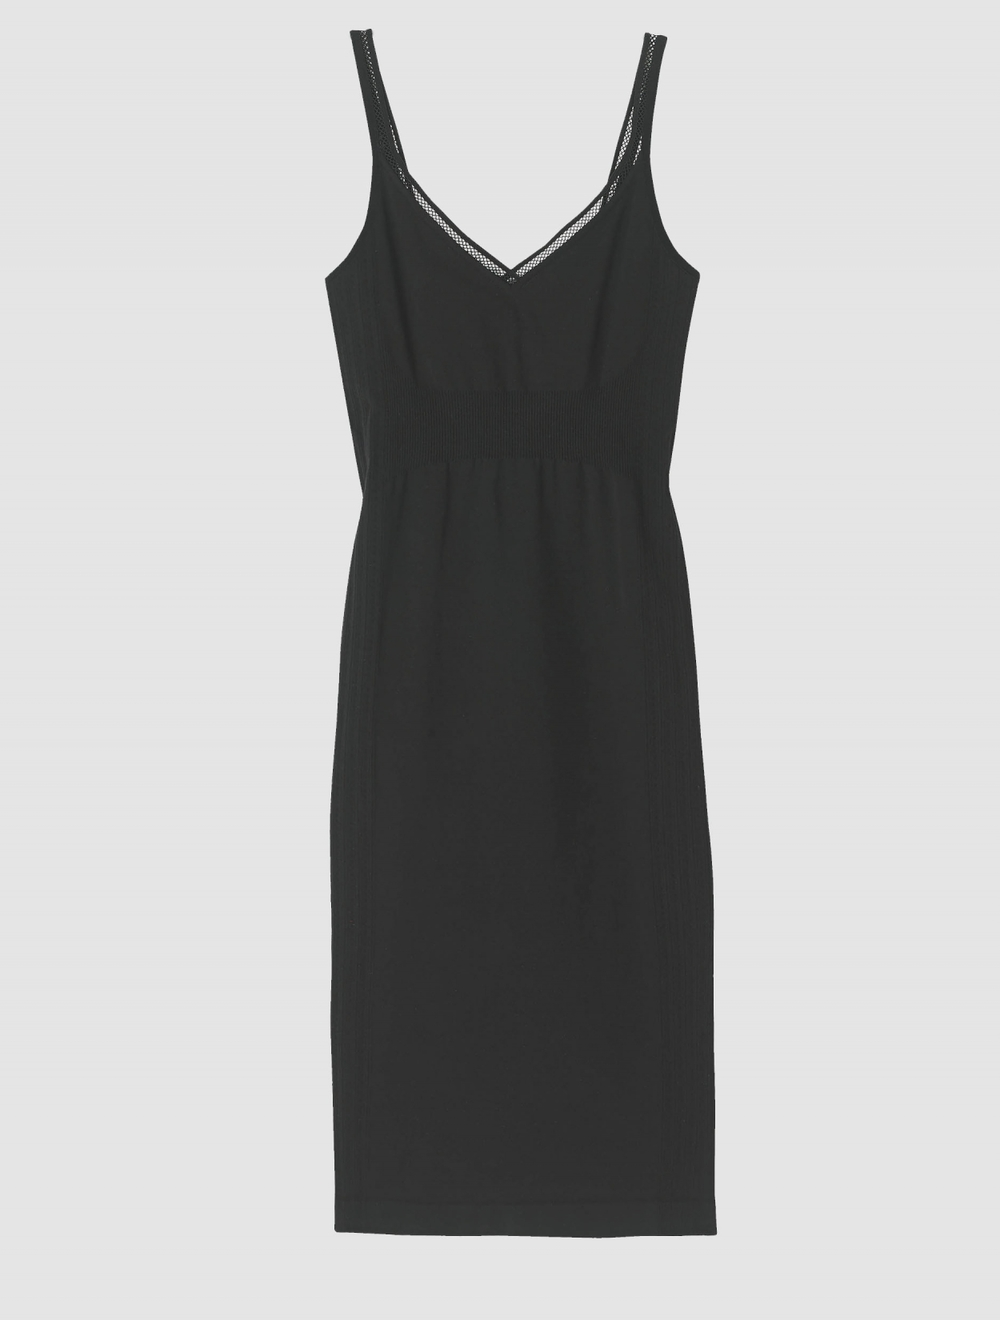 hoxton_slip_dress2_GREY_1250_1650_s_c1.jpg